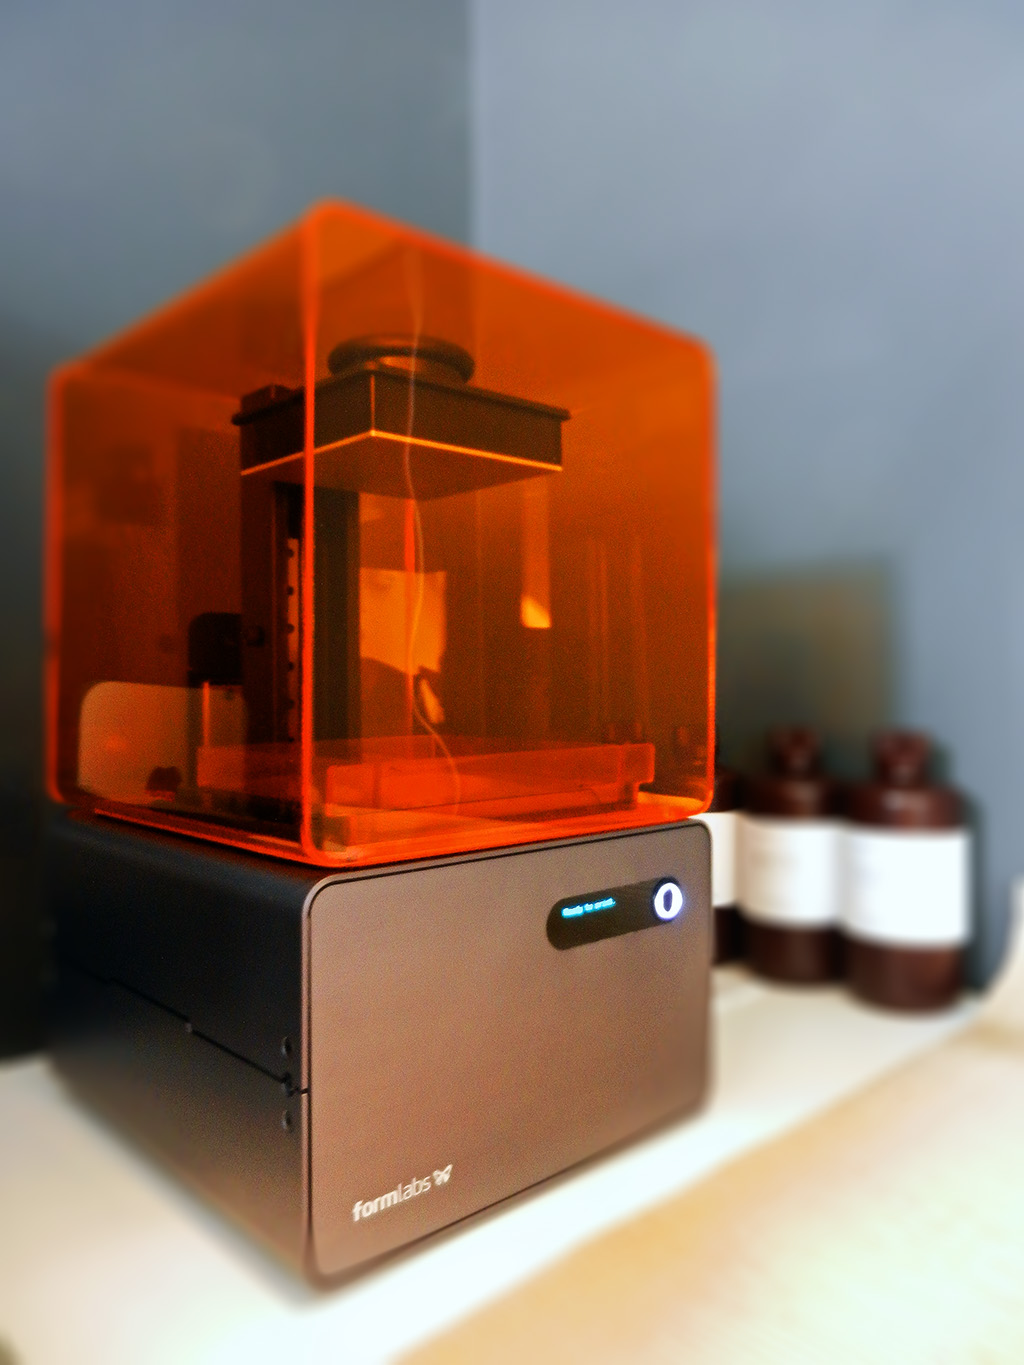 form+1 3D printer from formlabs